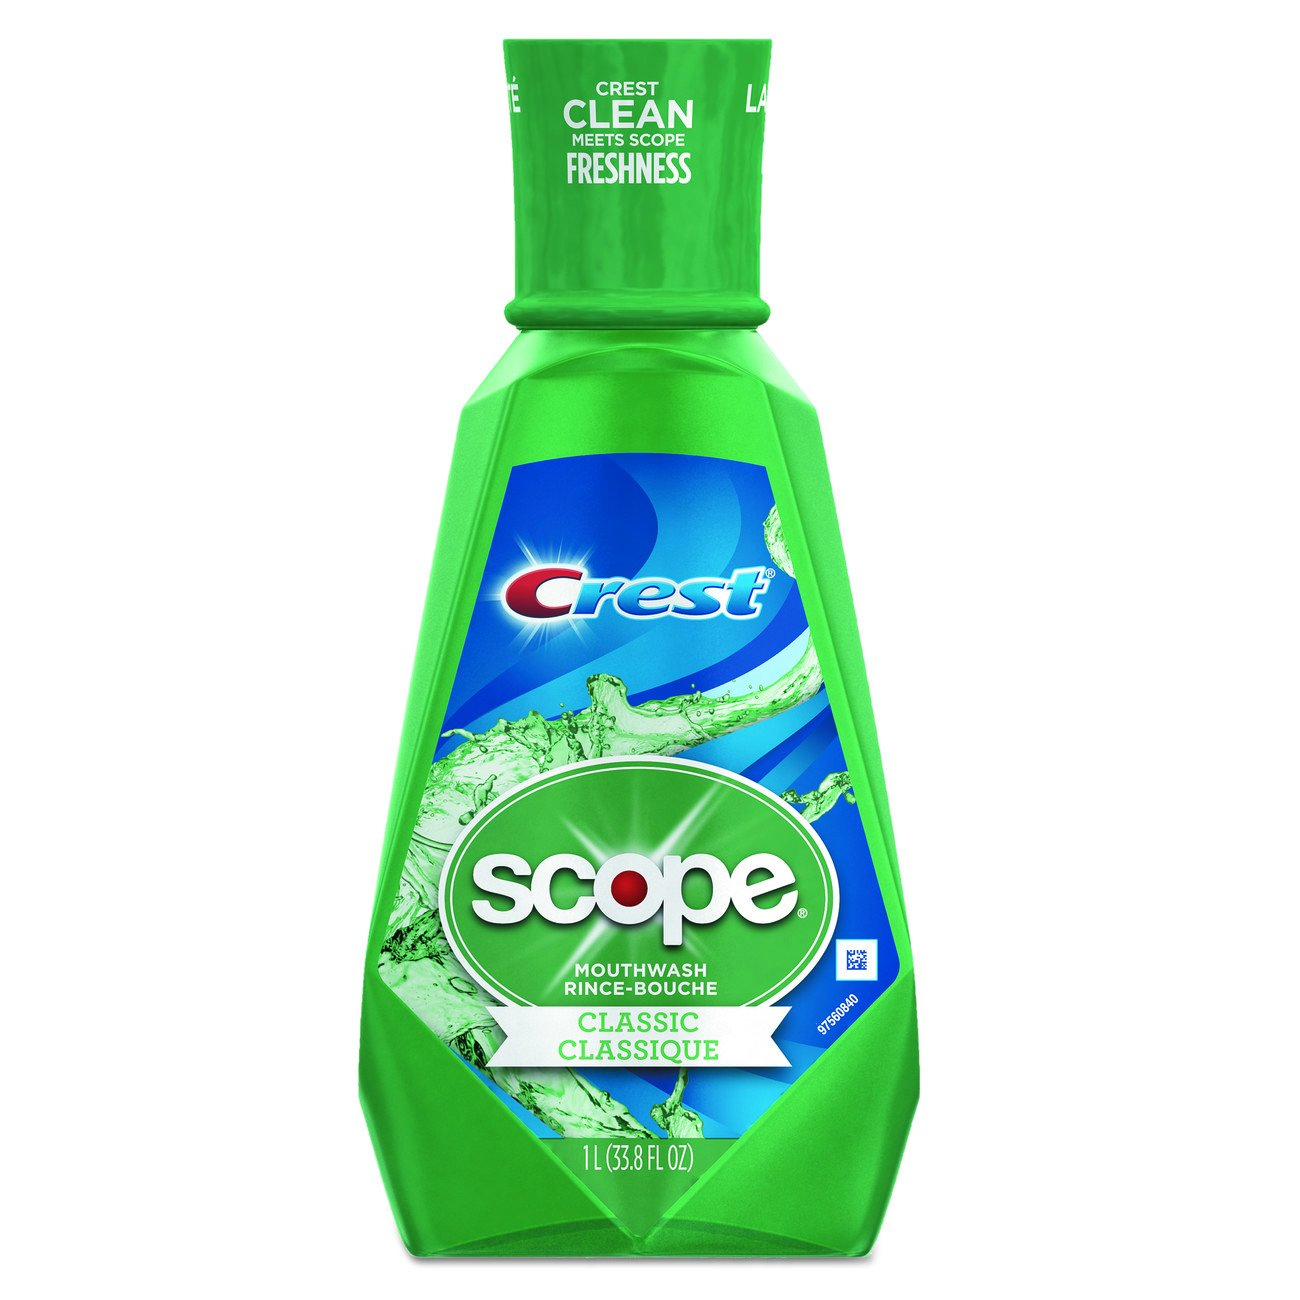 Crest Scope Classic Mouthwash for Bad Breath, Mint, 1 Litre